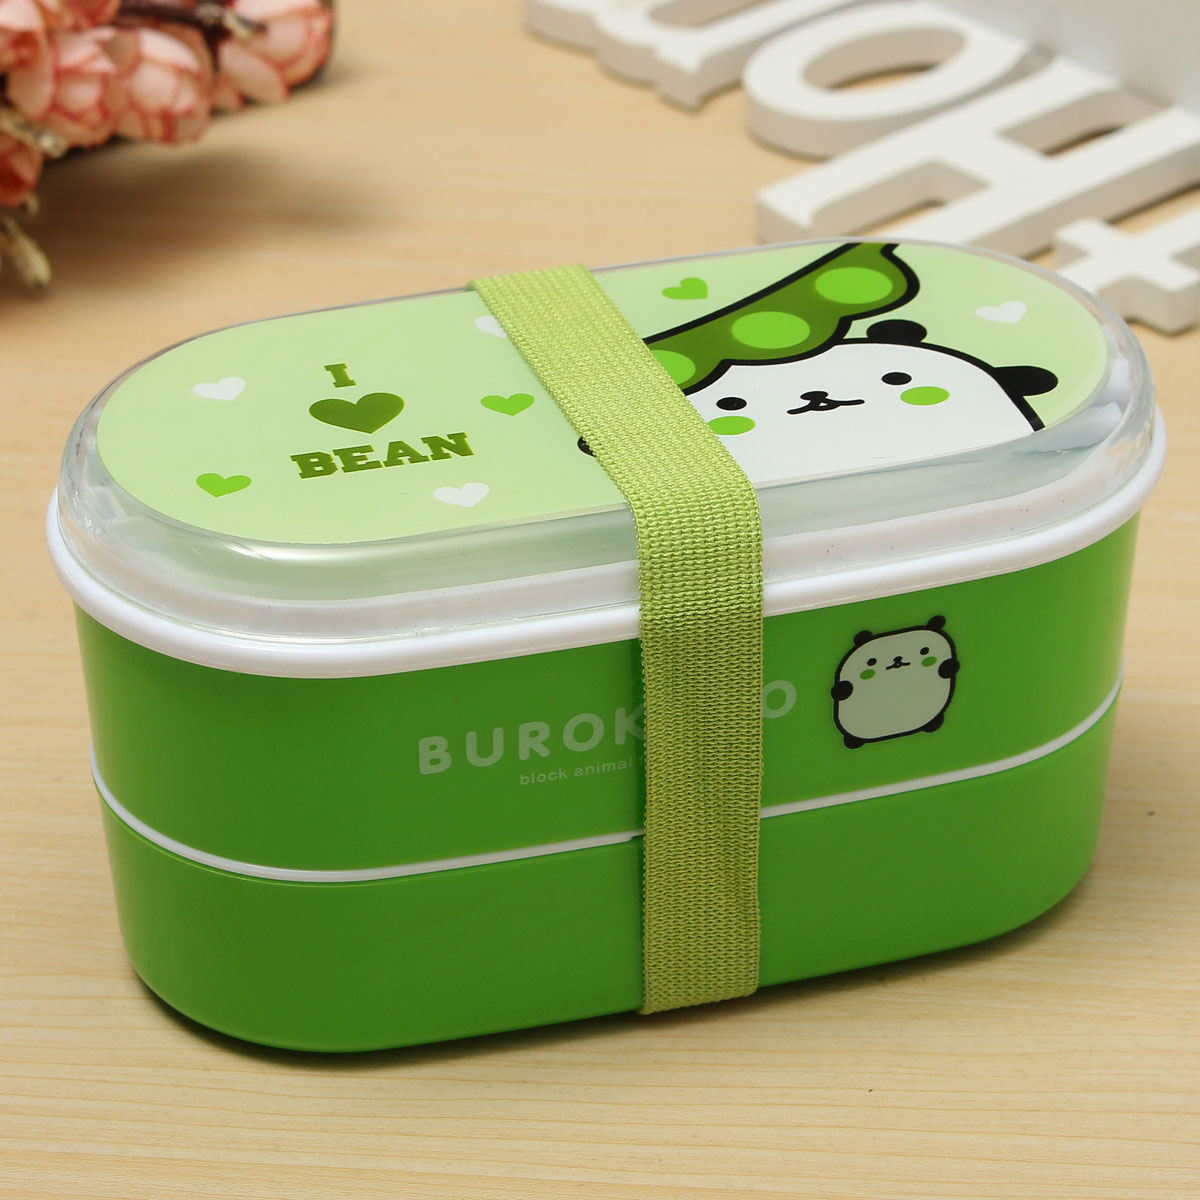 student cartoon lunch box food container storage portable bento box chopsticks green lazada. Black Bedroom Furniture Sets. Home Design Ideas